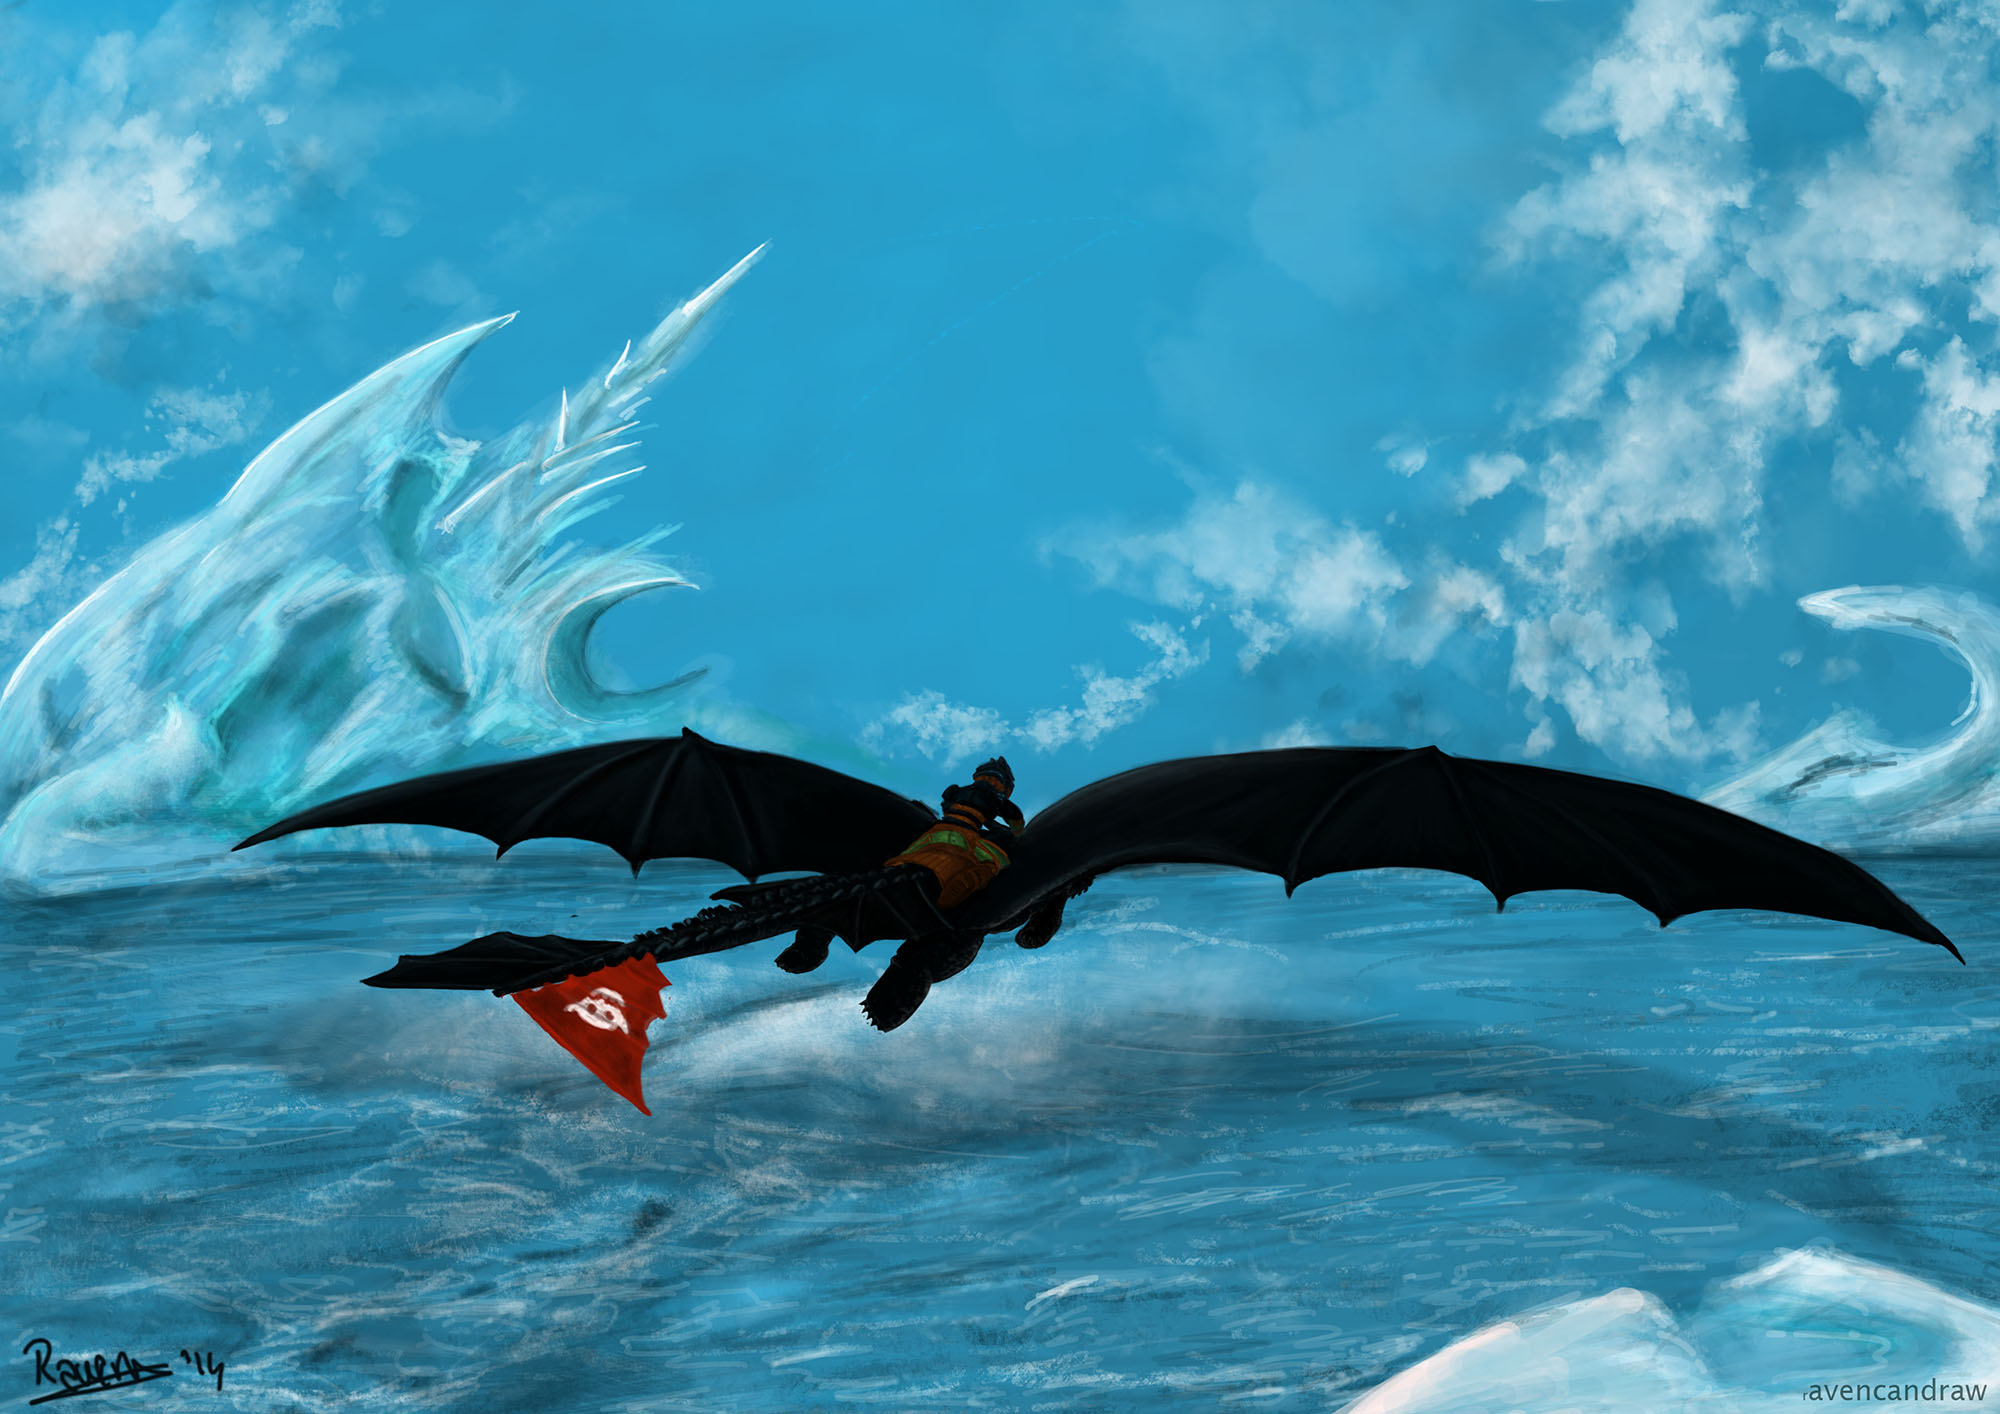 Httyd2 where no one goes by yoshida takumi on deviantart httyd2 where no one goes by yoshida takumi ccuart Images